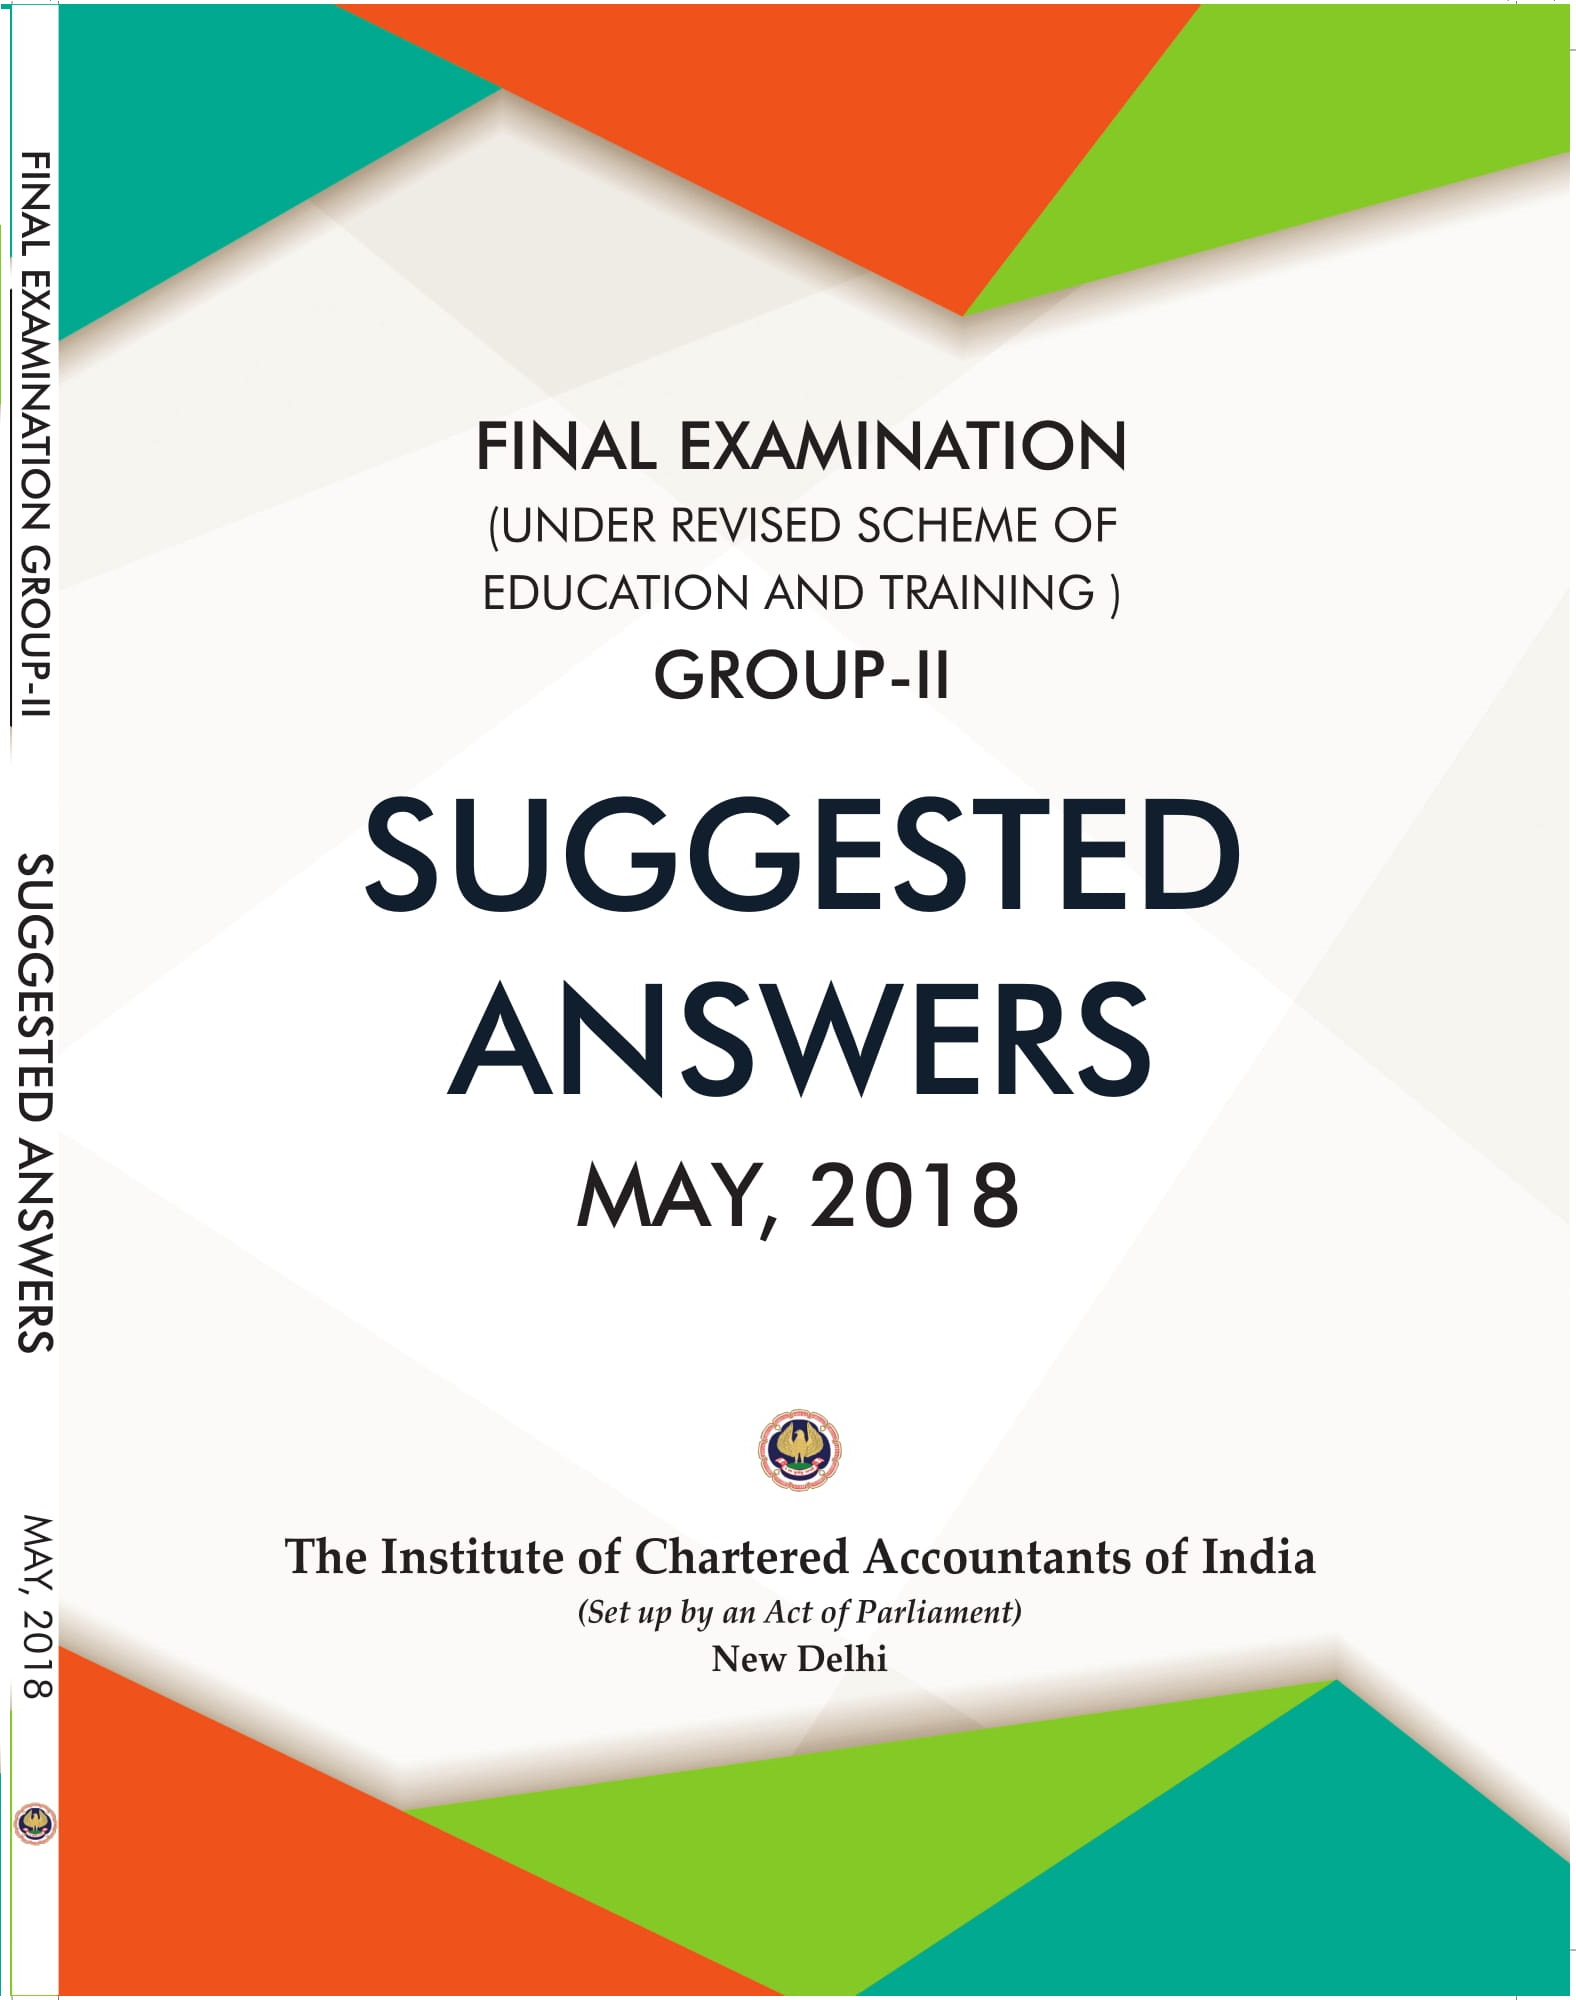 Final Examination (Under Revised Scheme of Education and Training) Group-2 Suggested Answers May, 2018